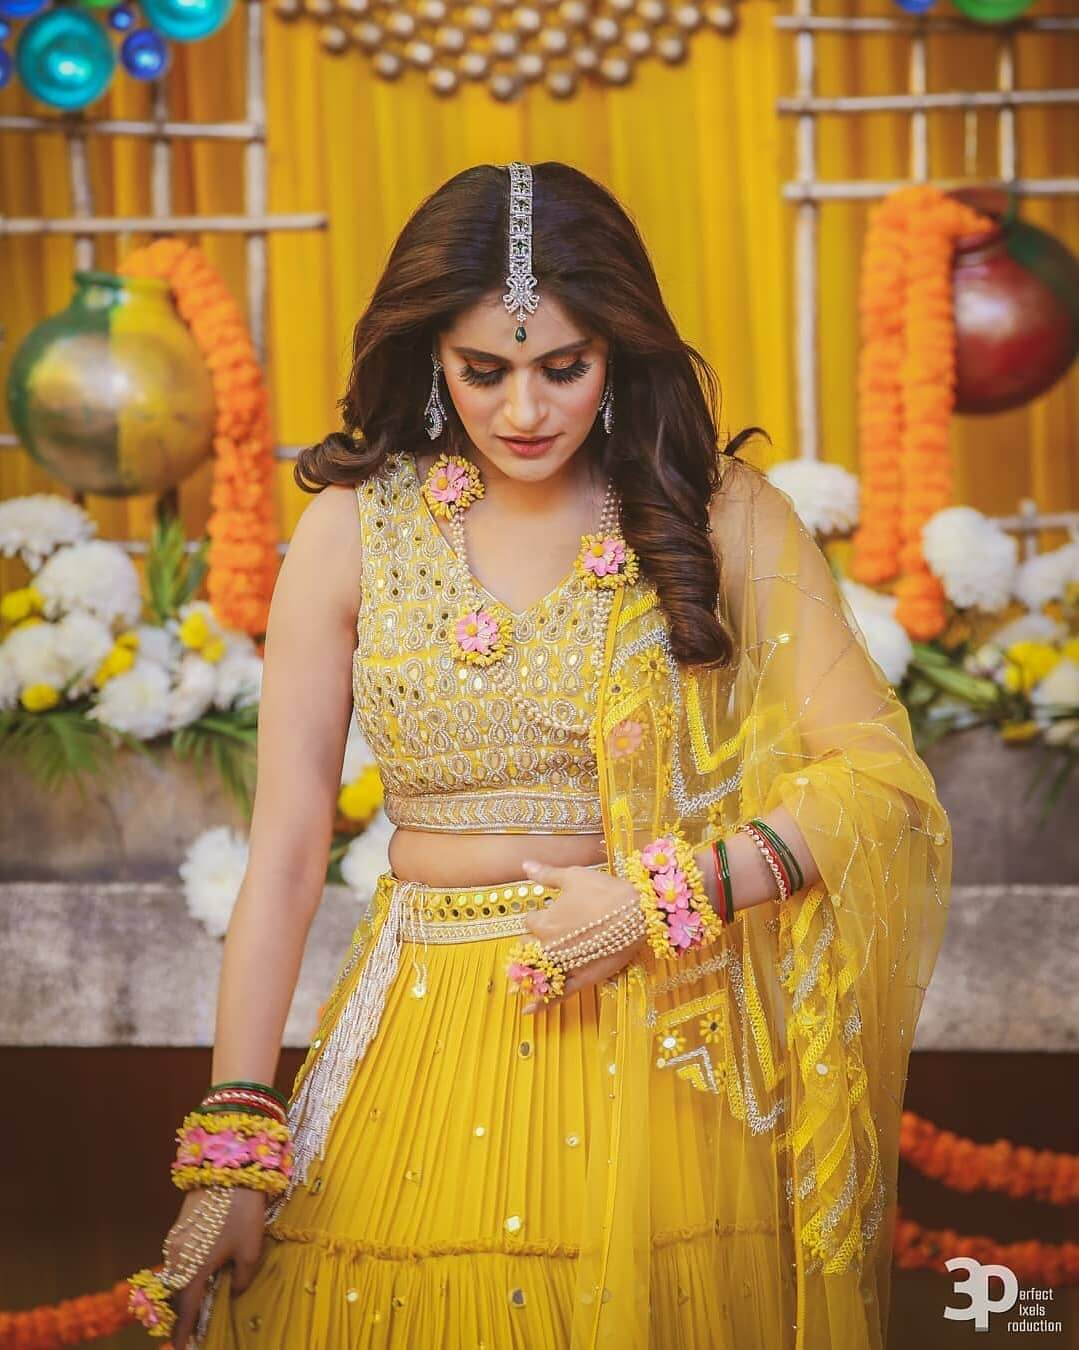 bride chose Lehenga chunk yellow in colour for her mehendi